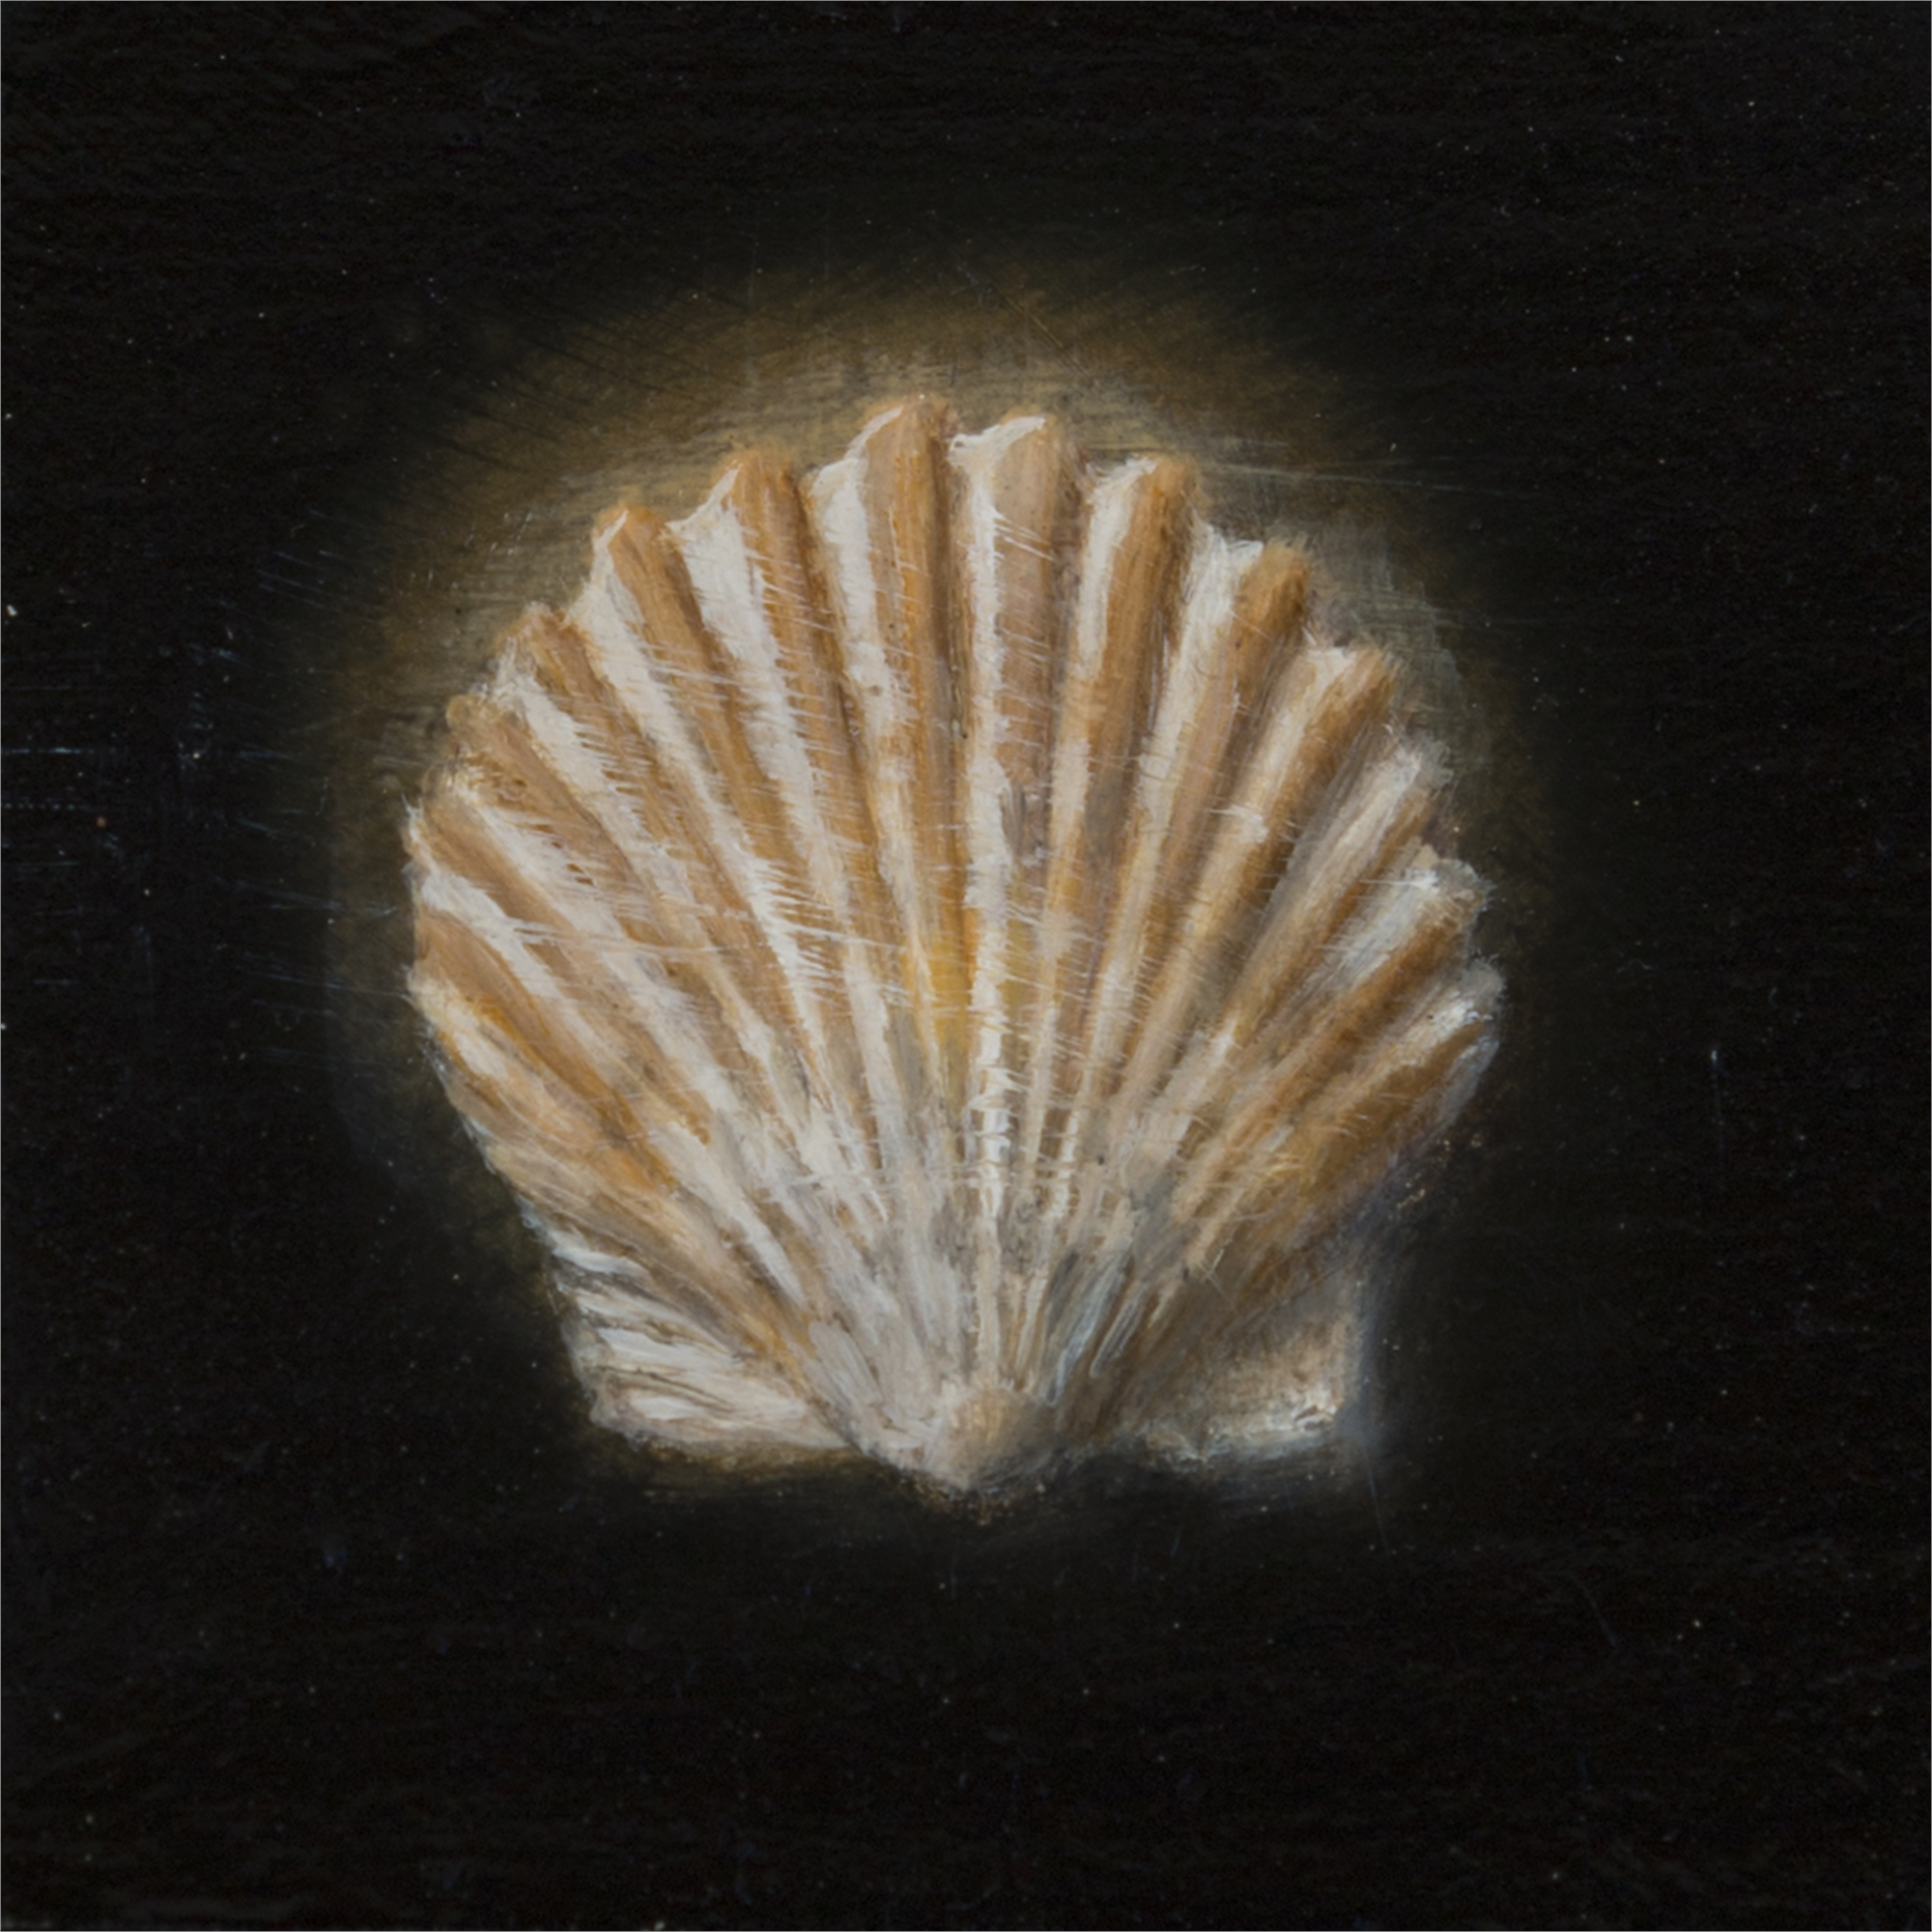 Shell 1 by Gregory Block